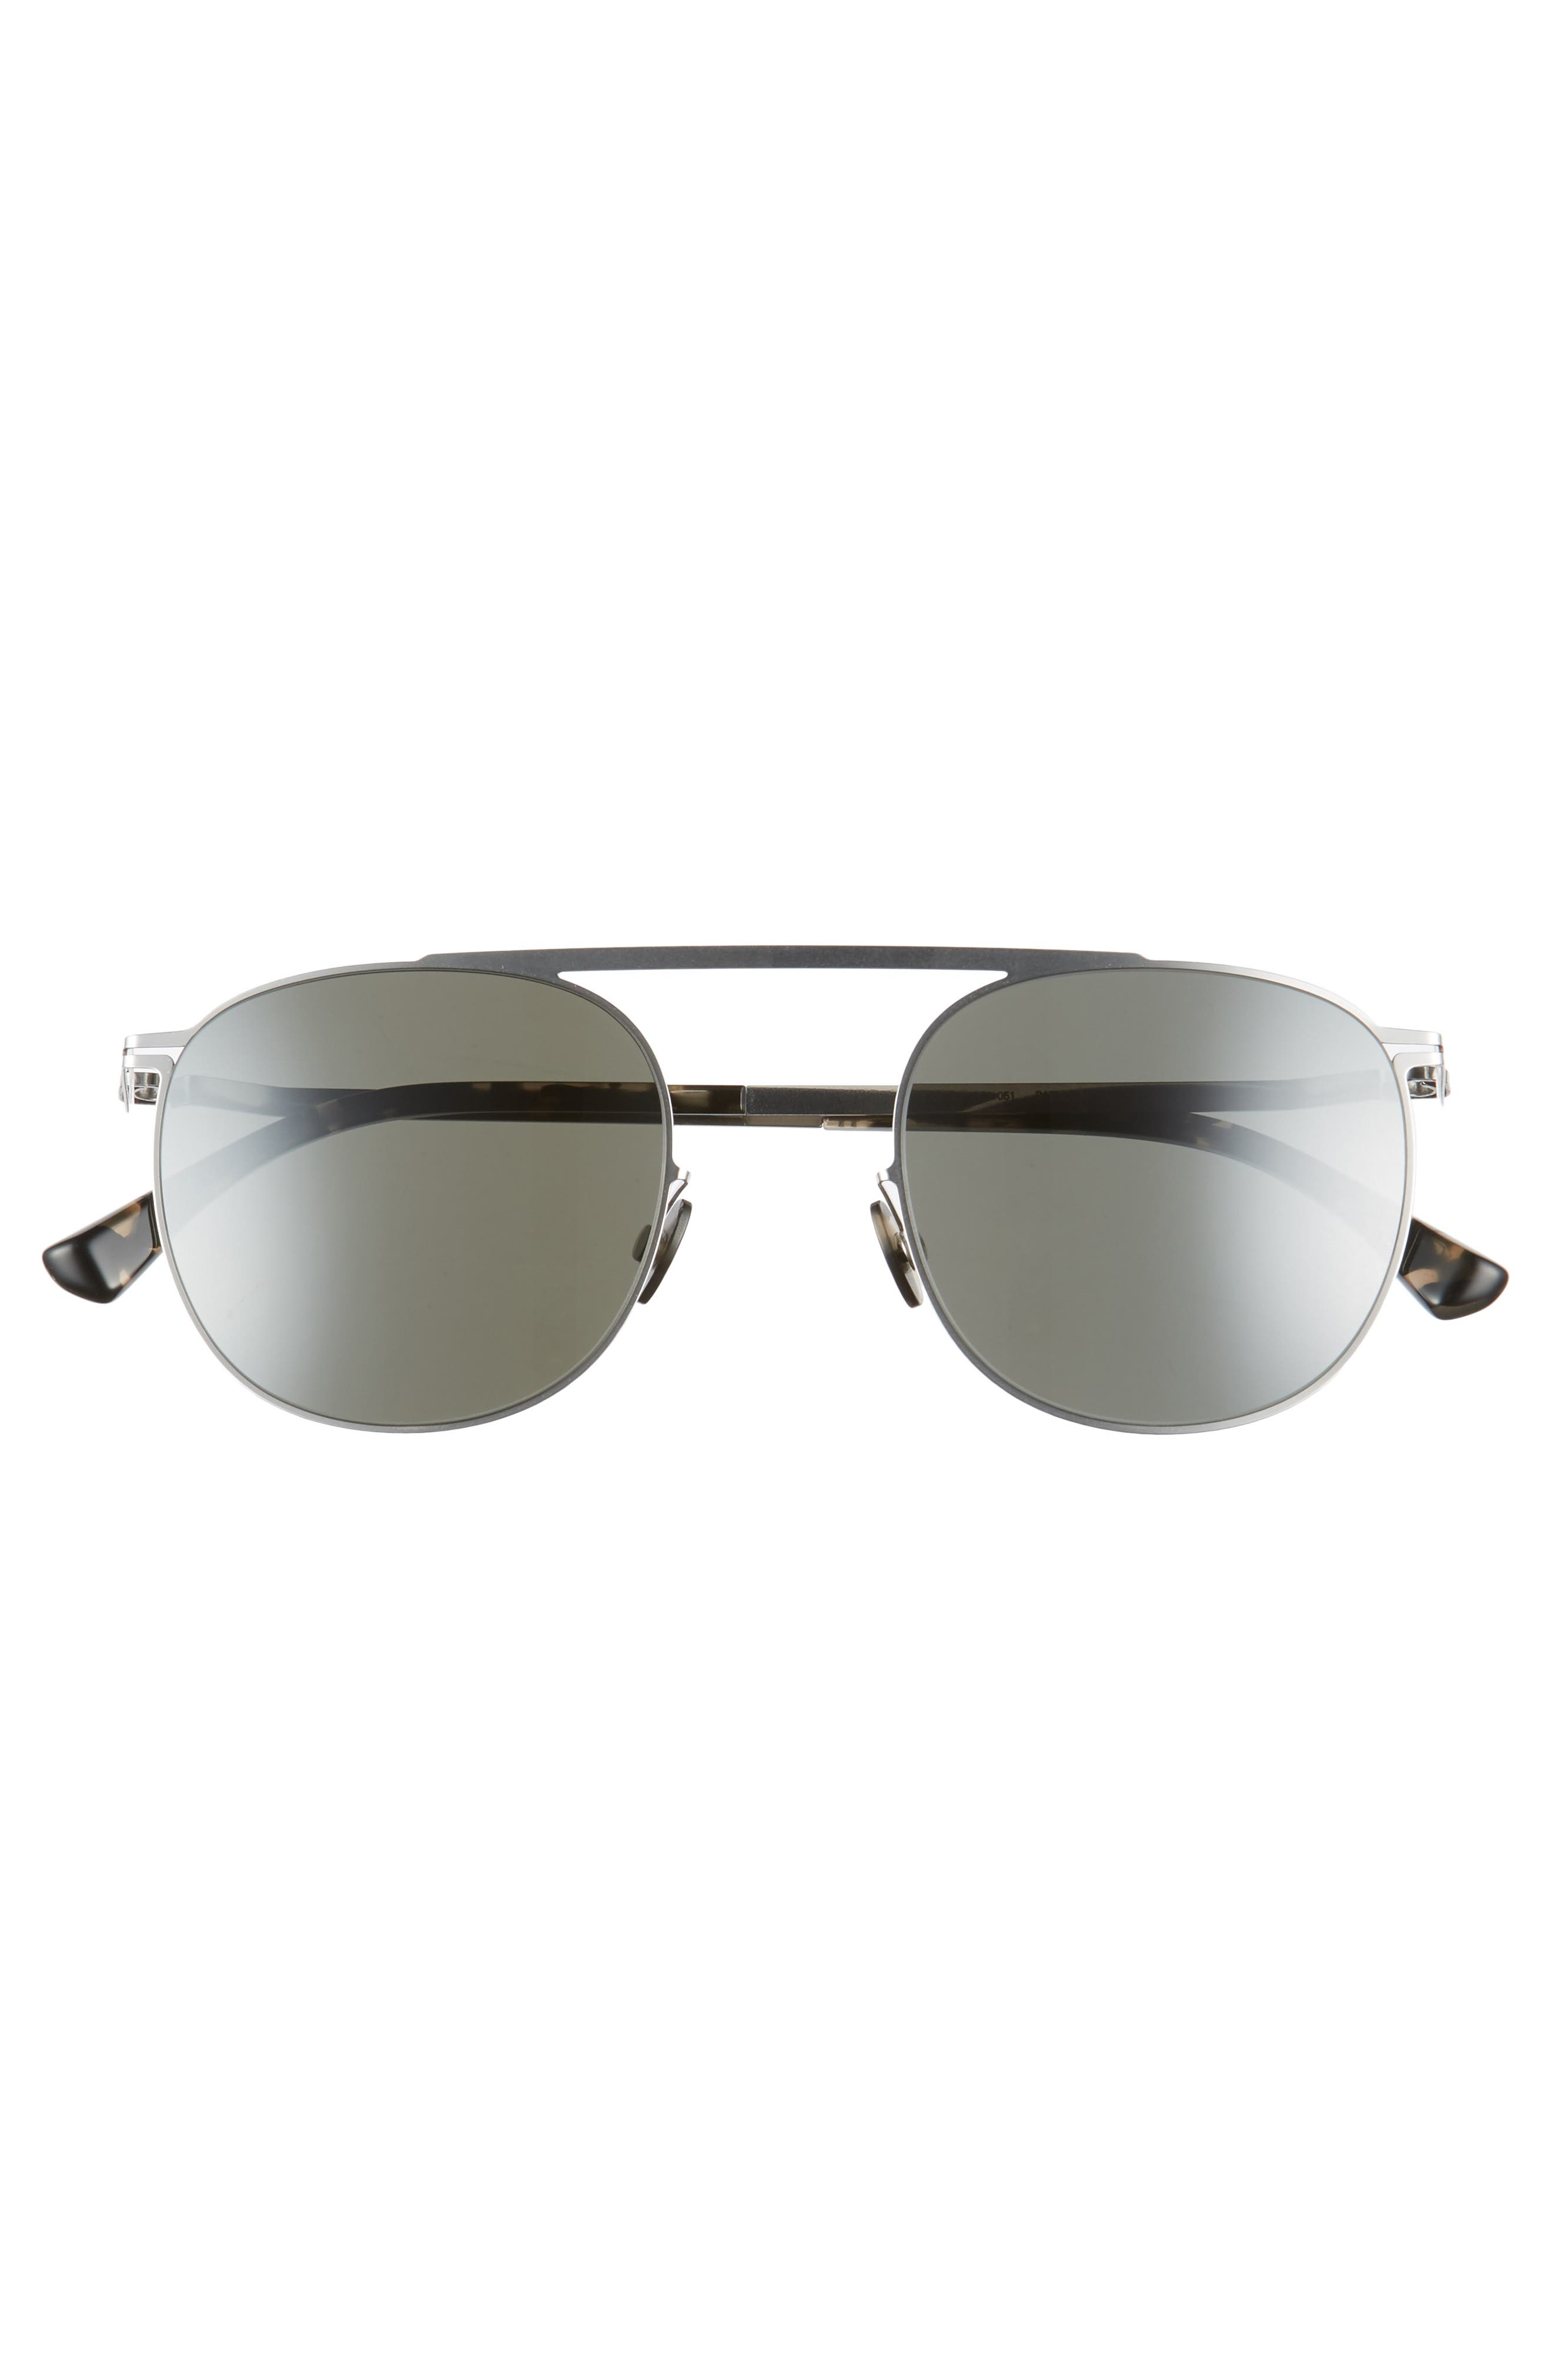 Erling 48mm Mirrored Sunglasses,                             Alternate thumbnail 2, color,                             041